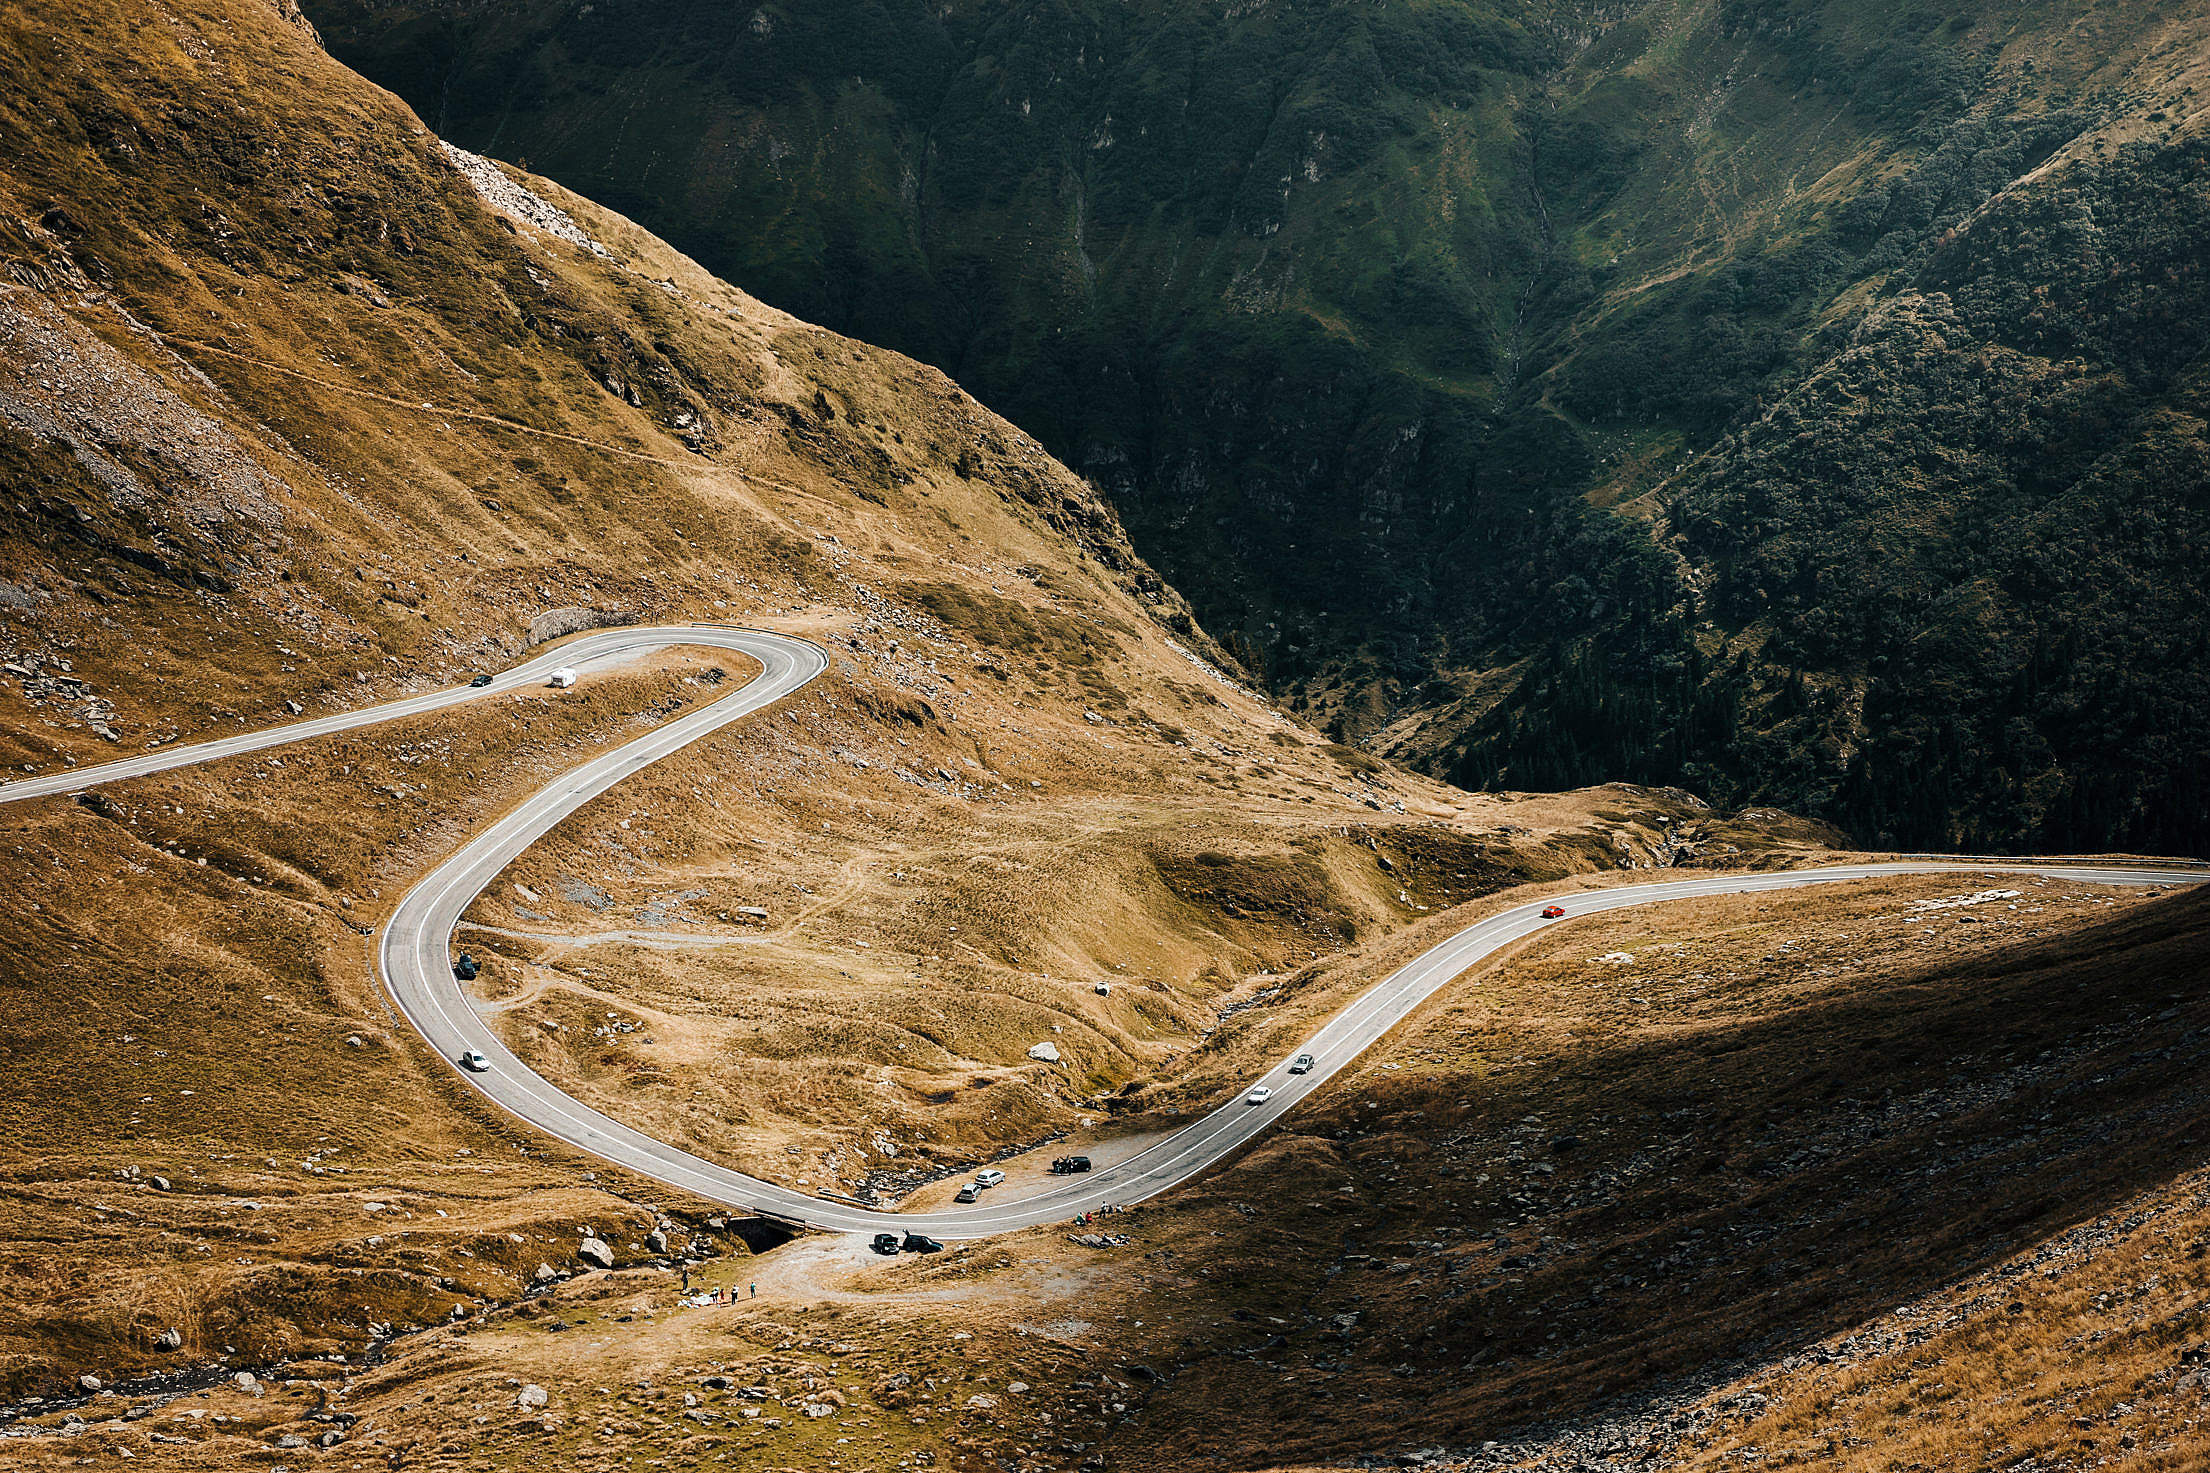 Download Transfagarasan Road in Romania Free Stock Photo